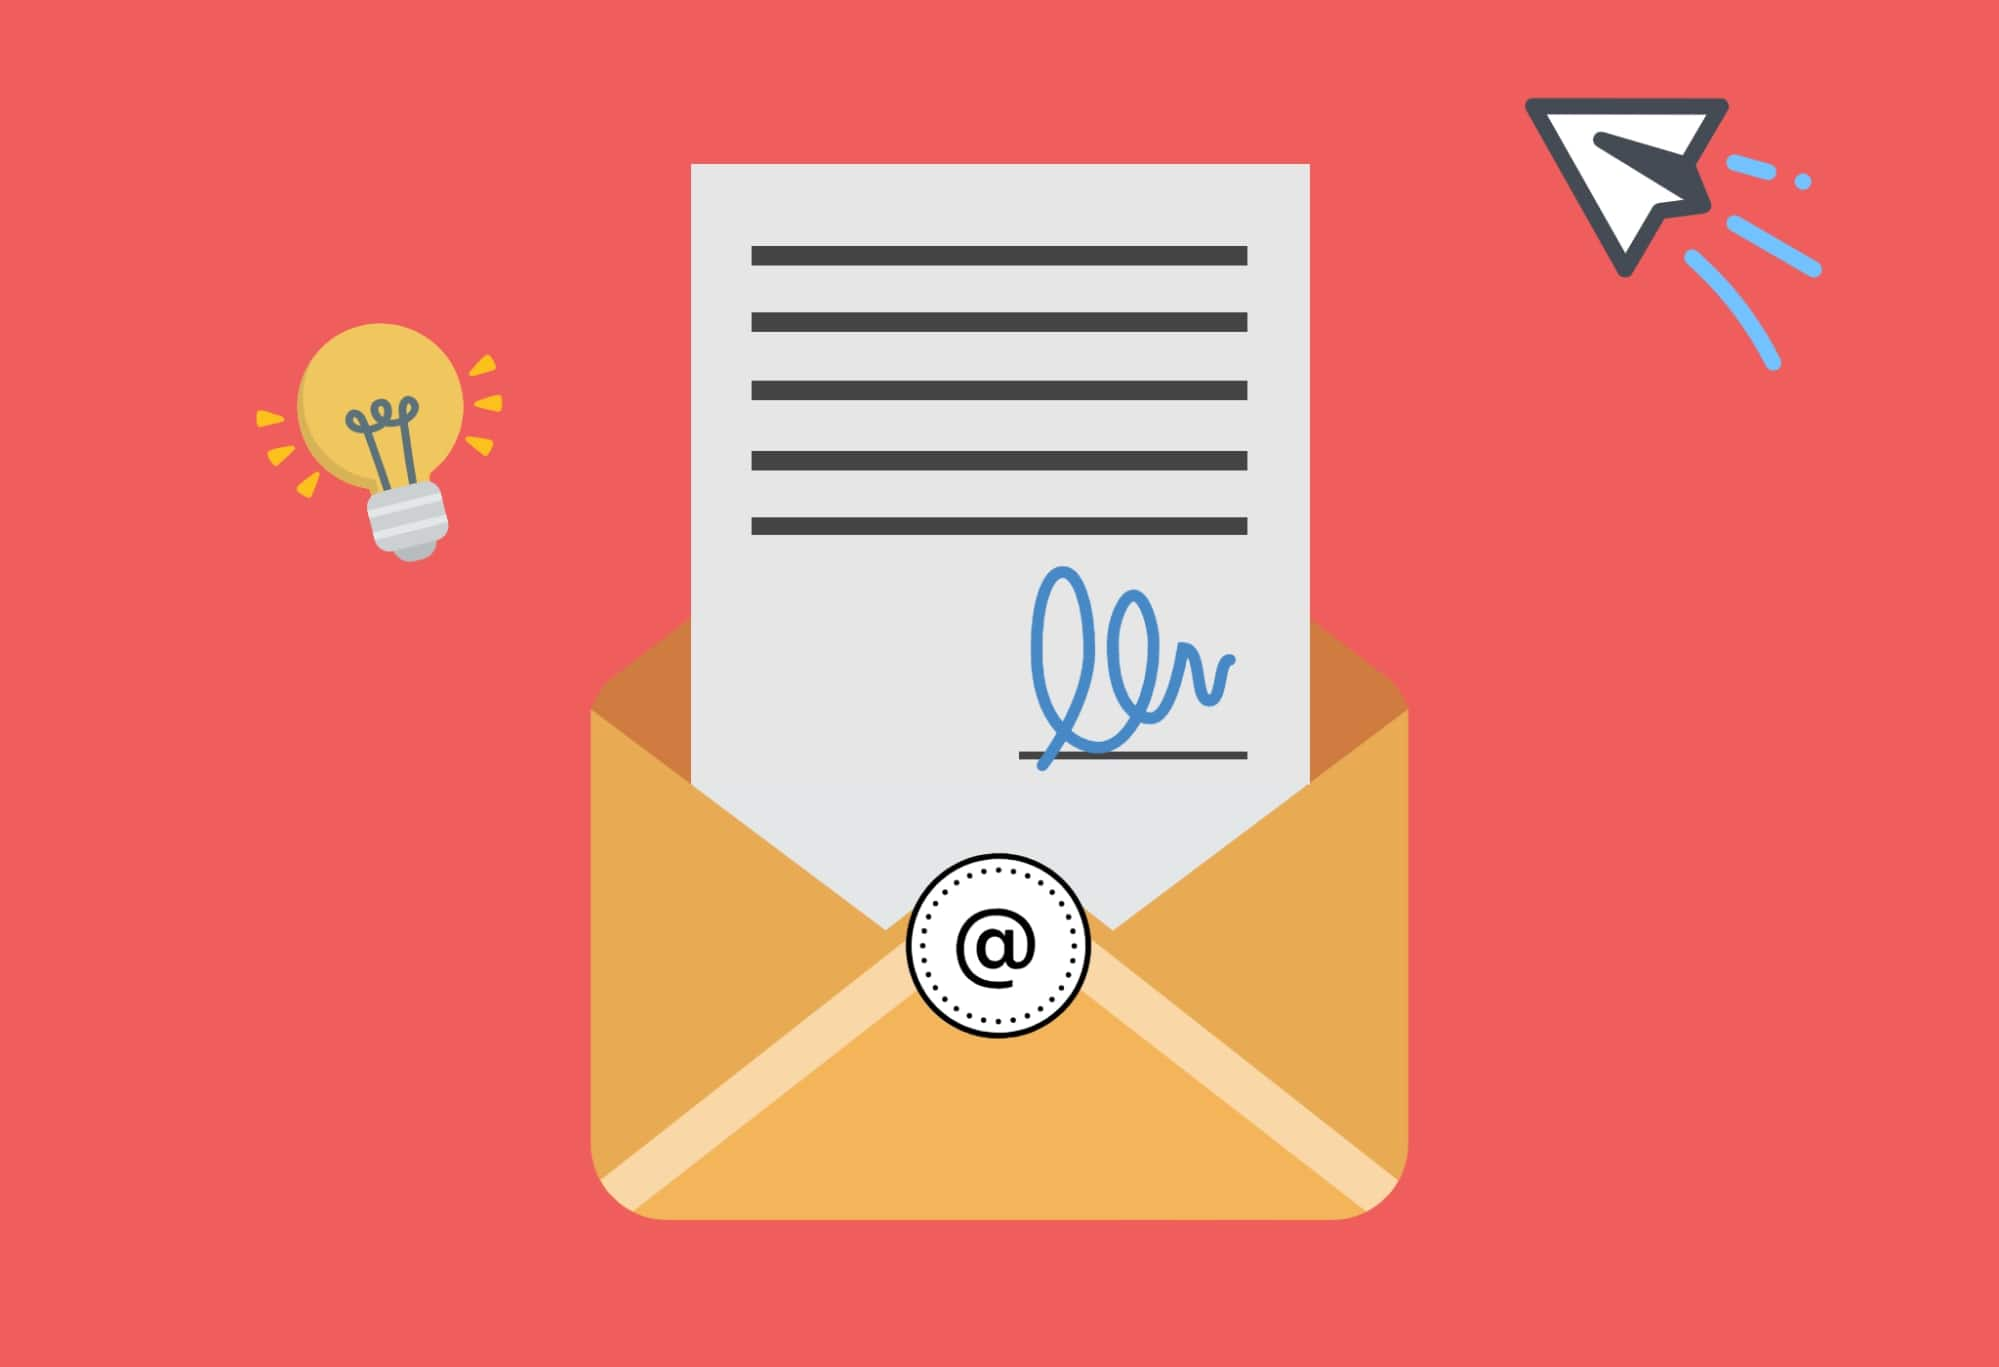 What is an email banner?